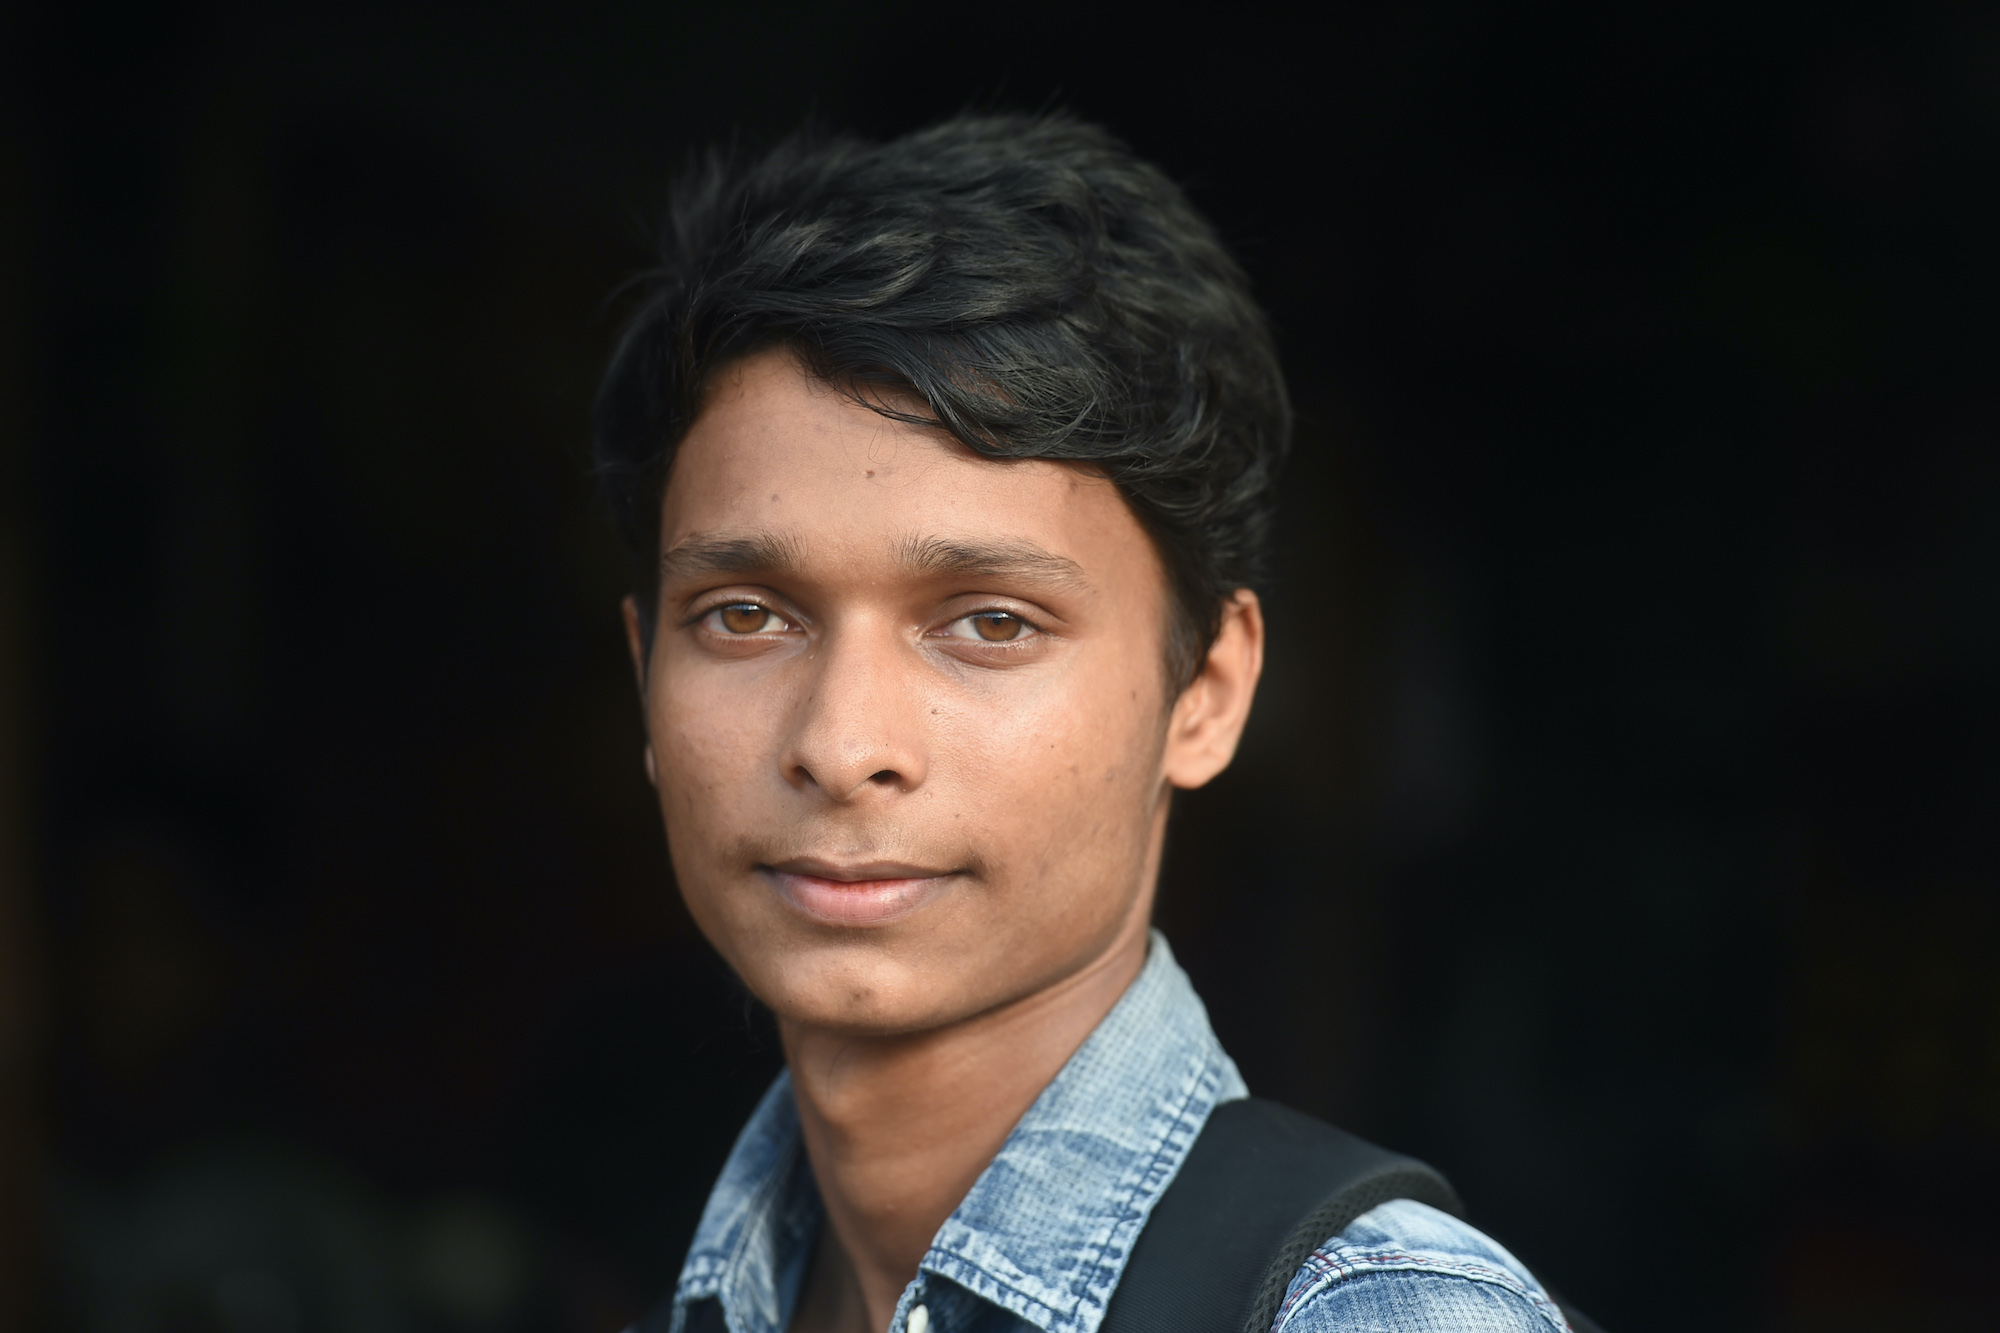 Rohingya refugee Sawyed Ullah, 18 – seen here posing for a photo near his home in the Jamtoli refugee camp, near Ukhia, Bangladesh, on August 23 – fled military-backed violence in Myanmar in 2017. Five million young voters will cast their first ever ballots on Sunday, though Ullah, trapped in exile, will not be among them. (AFP)